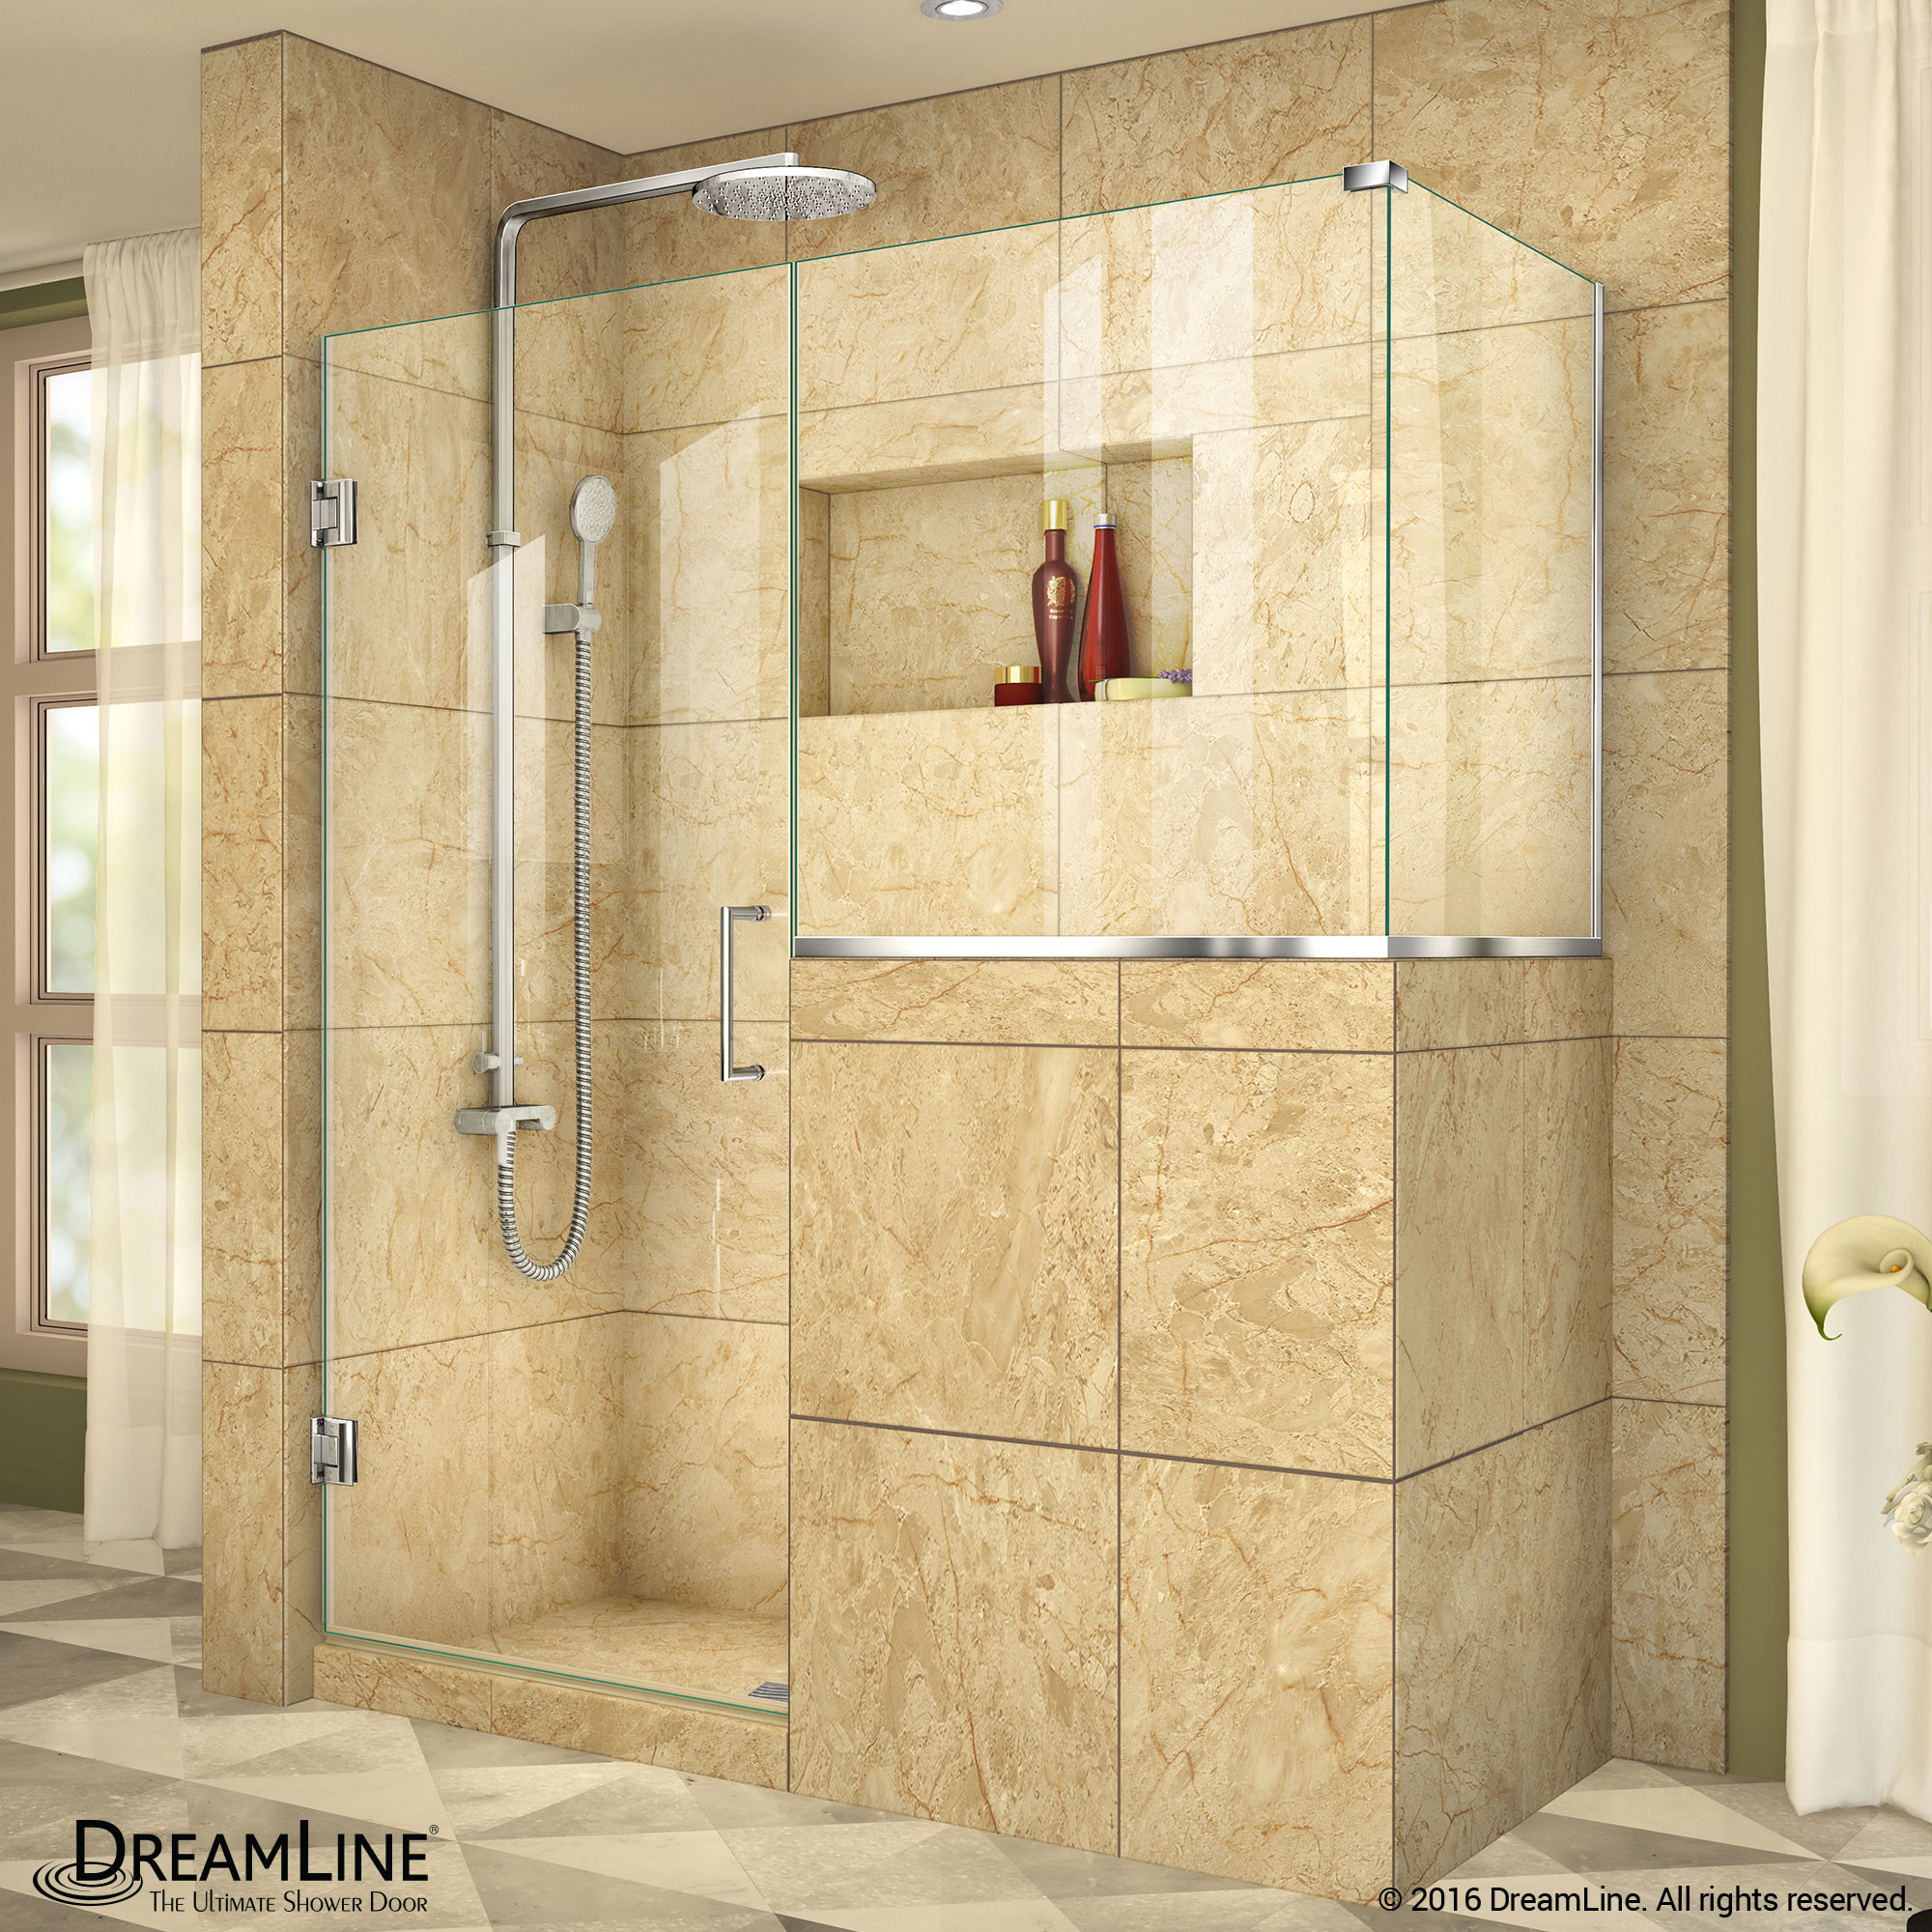 "DreamLine SHEN-2424303636-01 Unidoor Plus 54 x 36.375 x 72"" Hinged Shower Enclosure In Chrome Finish"